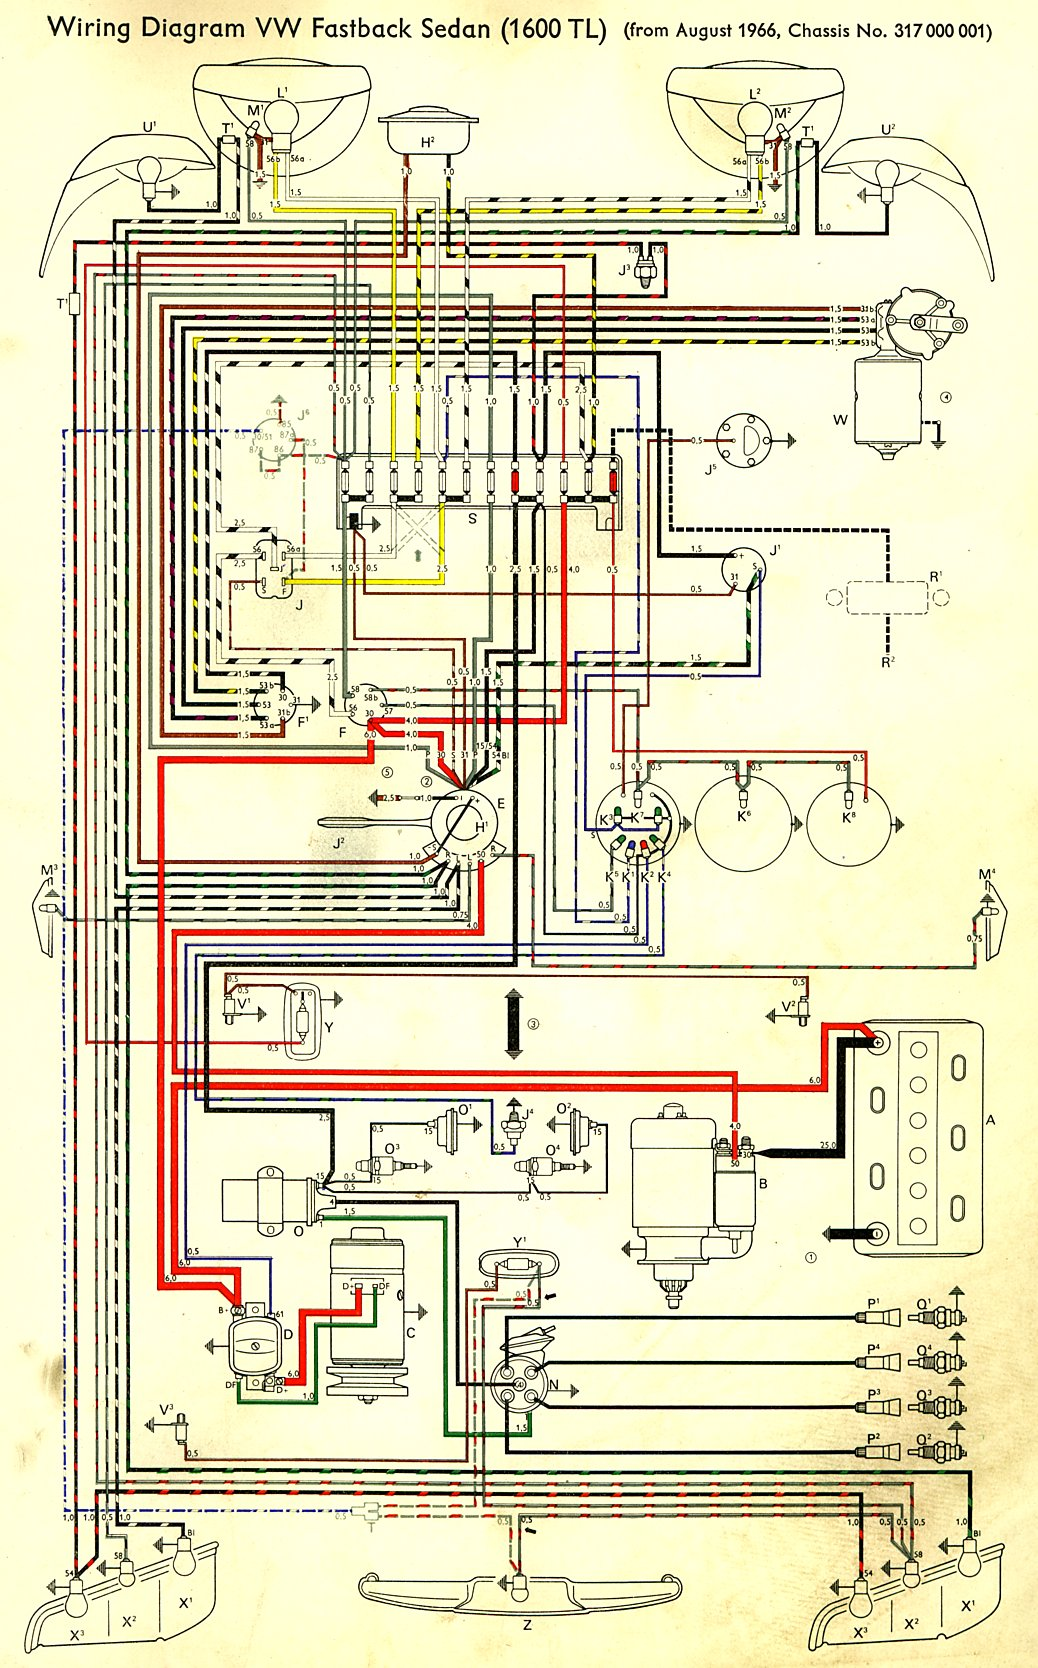 Type 3 Wiring Diagrams 1973 Chevy Fuse Box